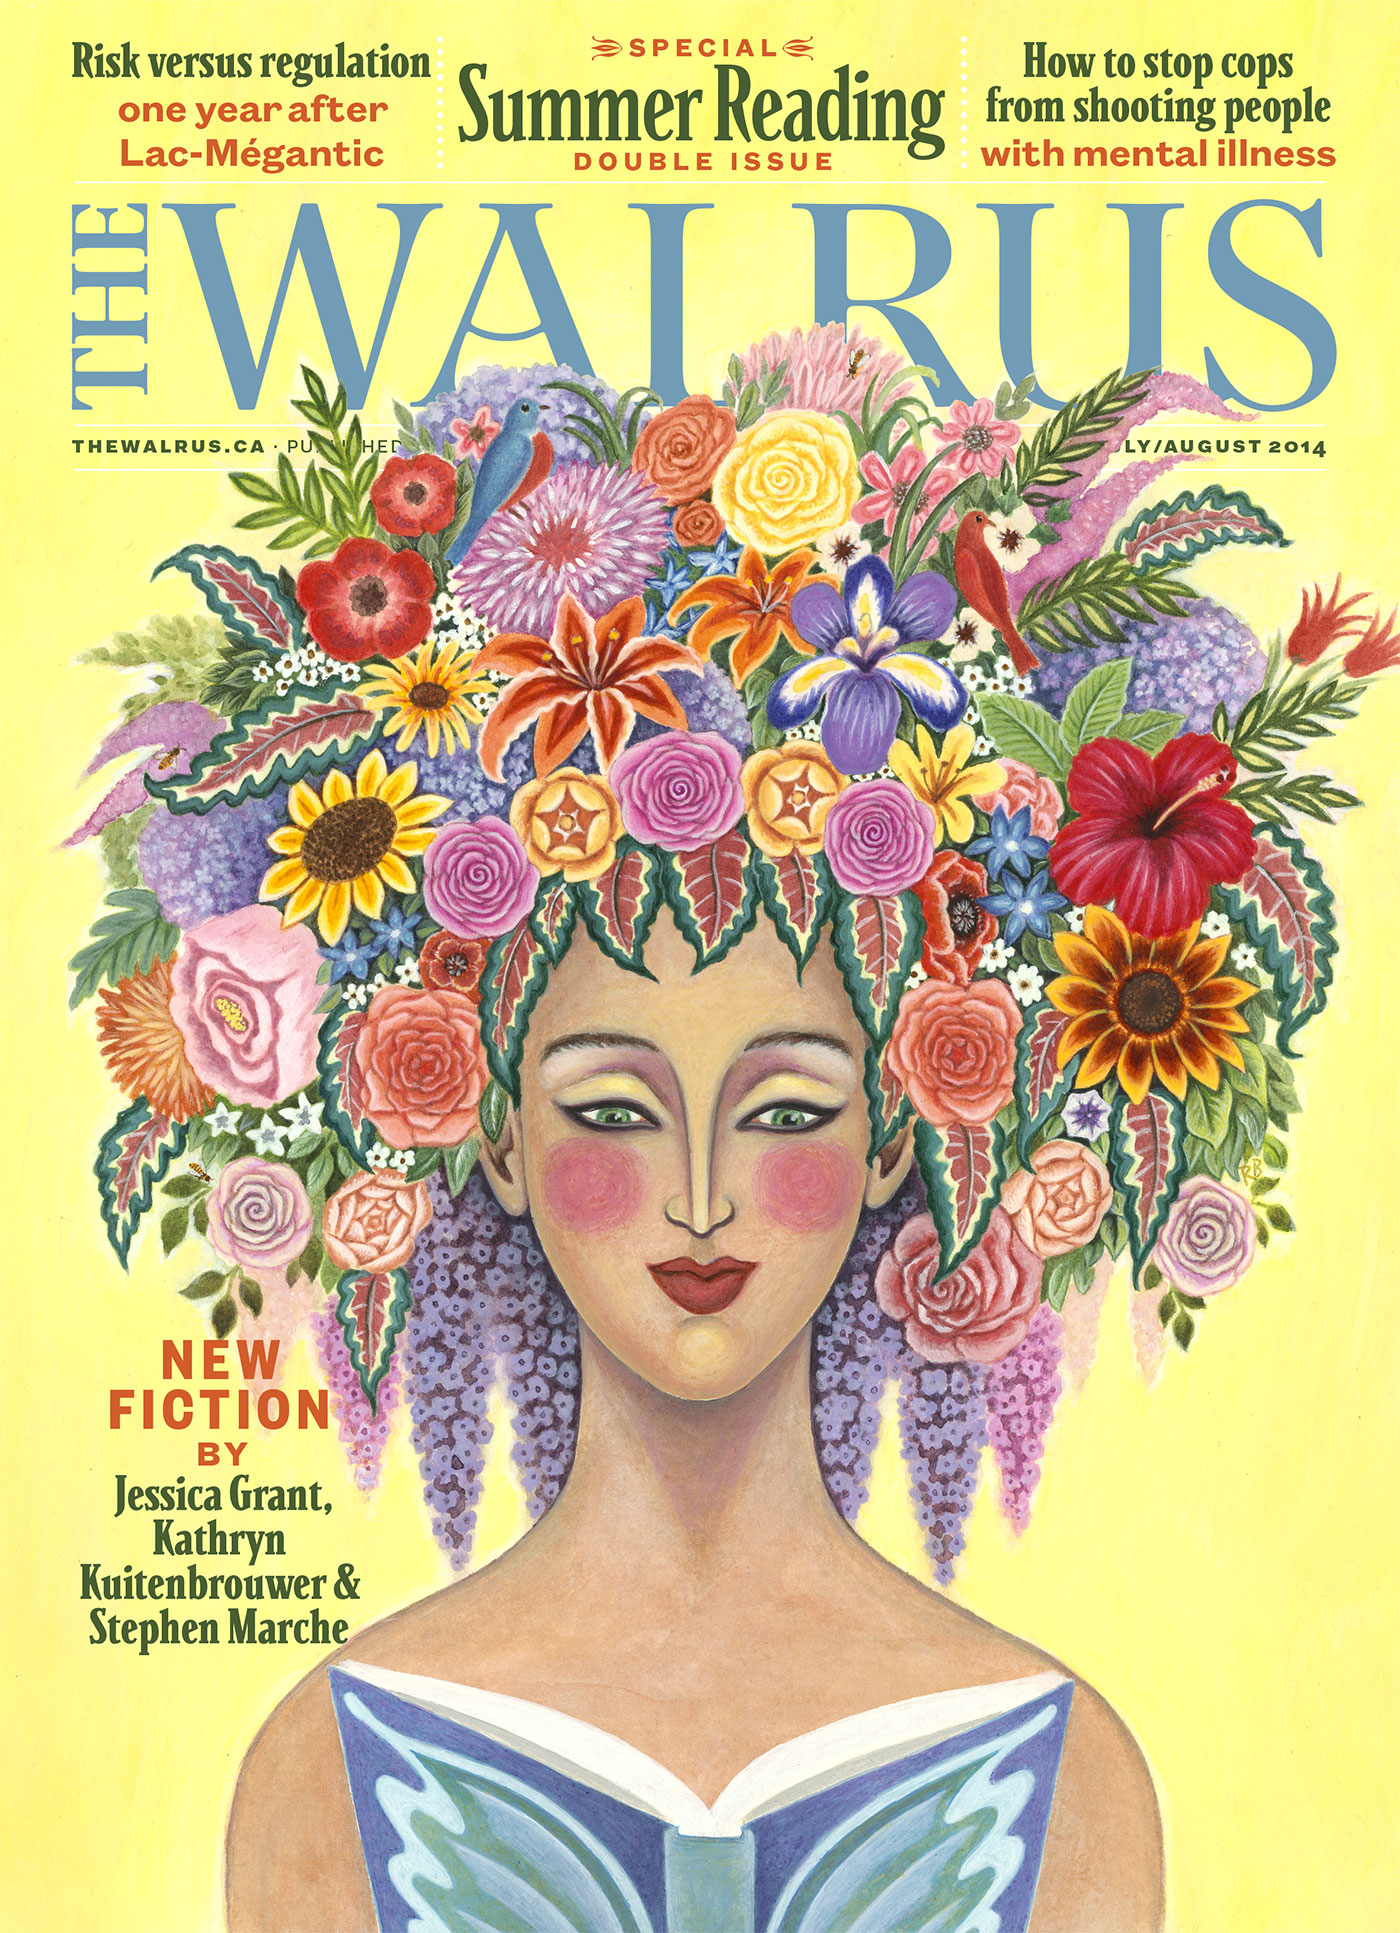 The Walrus July/August 2014 (Volume 11, Number 6)